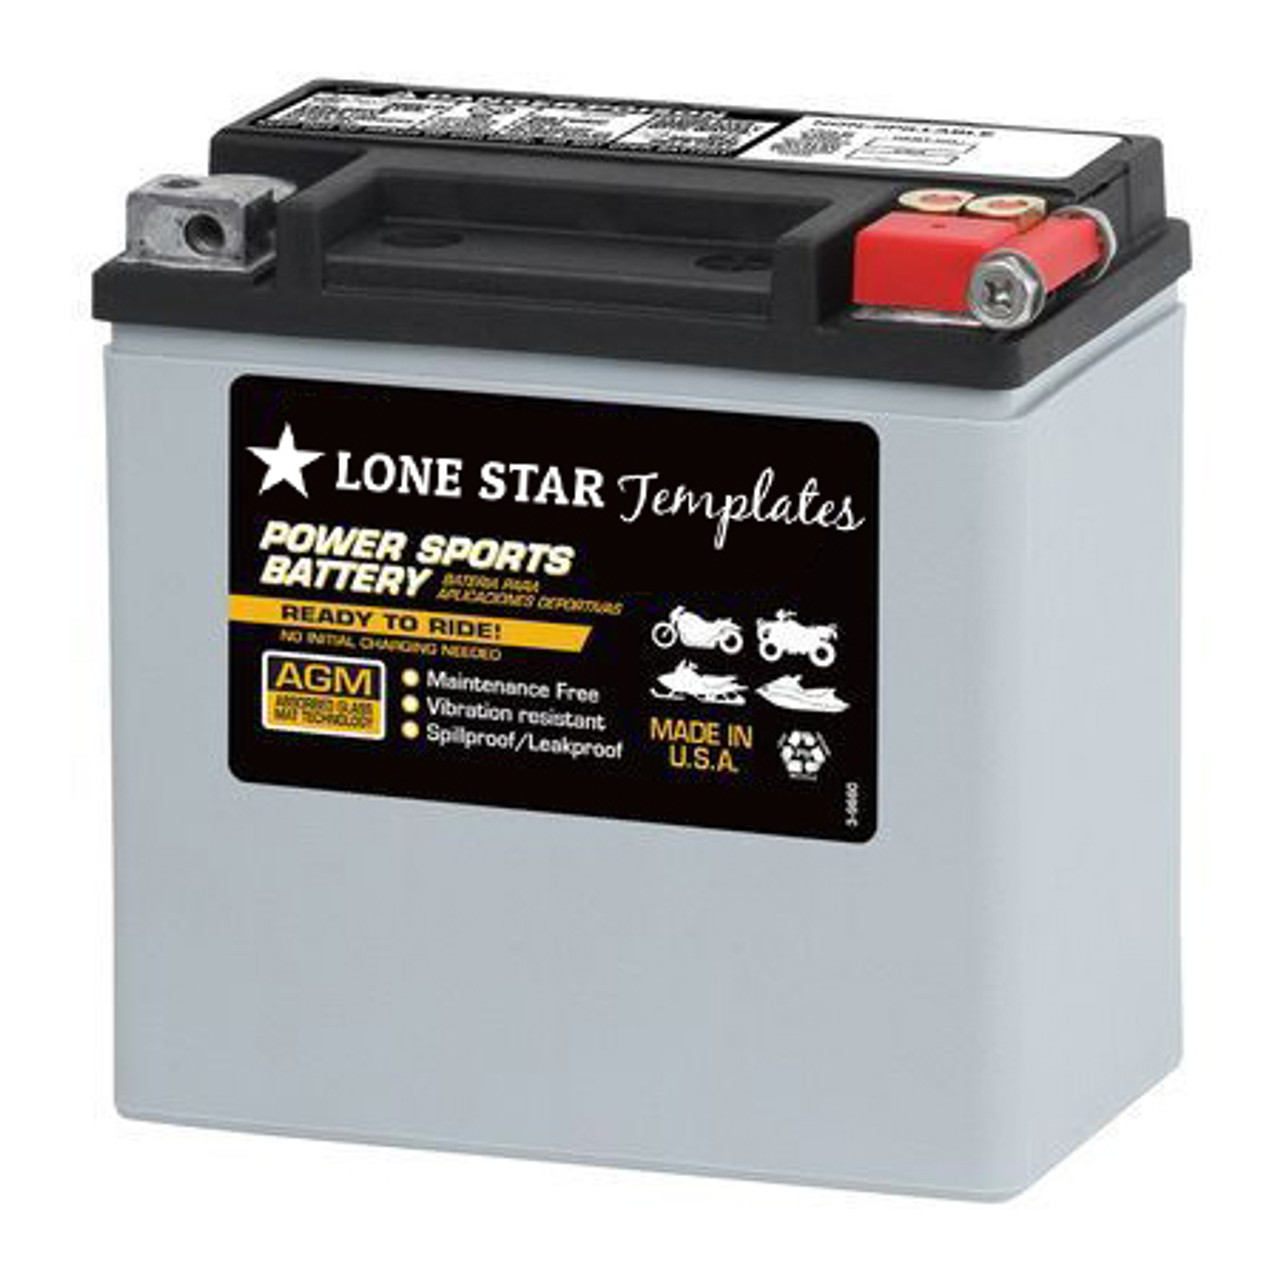 LoneStar Basics Battery